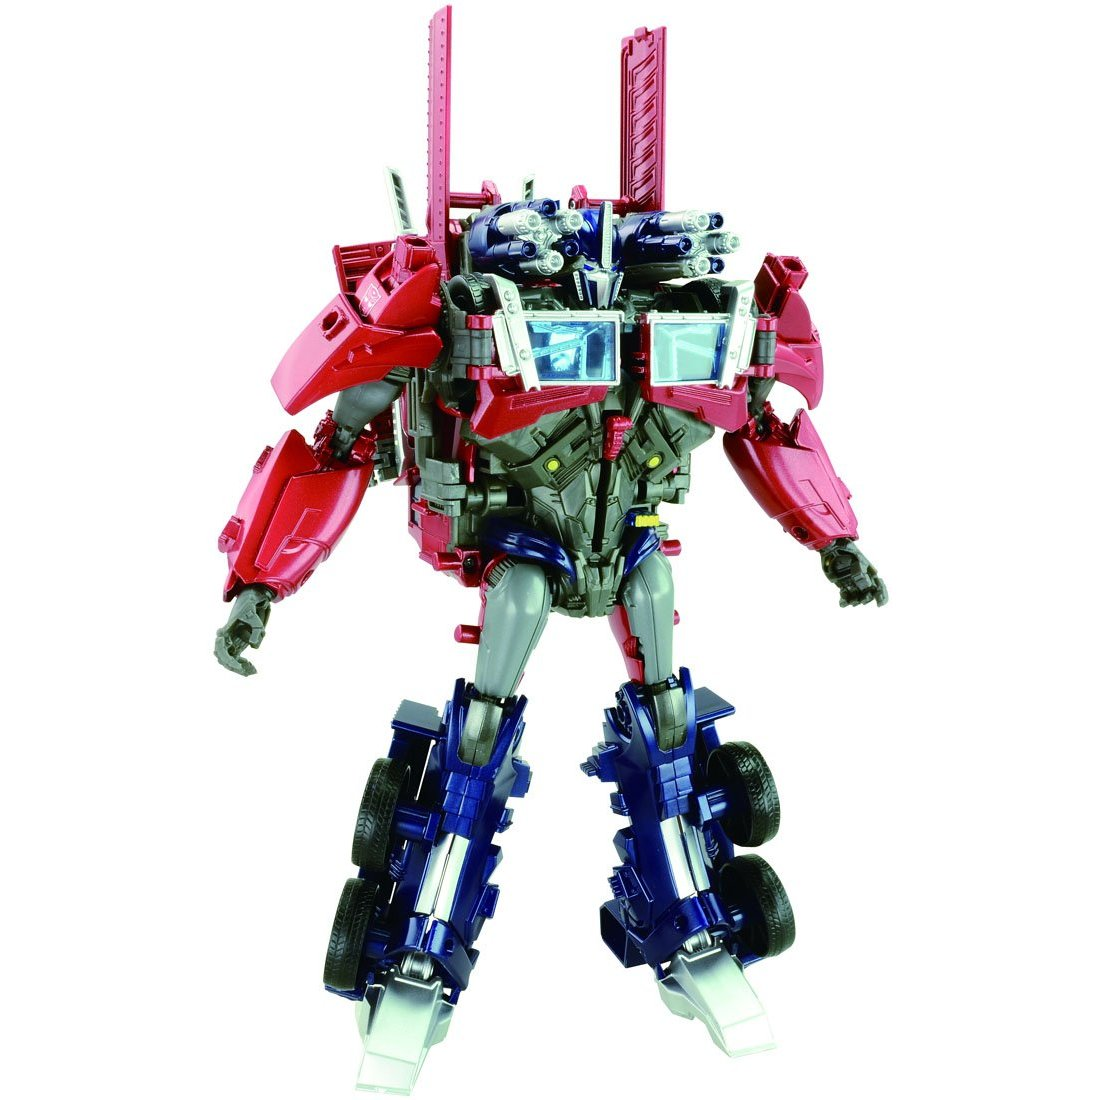 Optimus Prime (Arms Master) with Matrix and Shining R.A. 61hRweJ9N1L_AA1100_